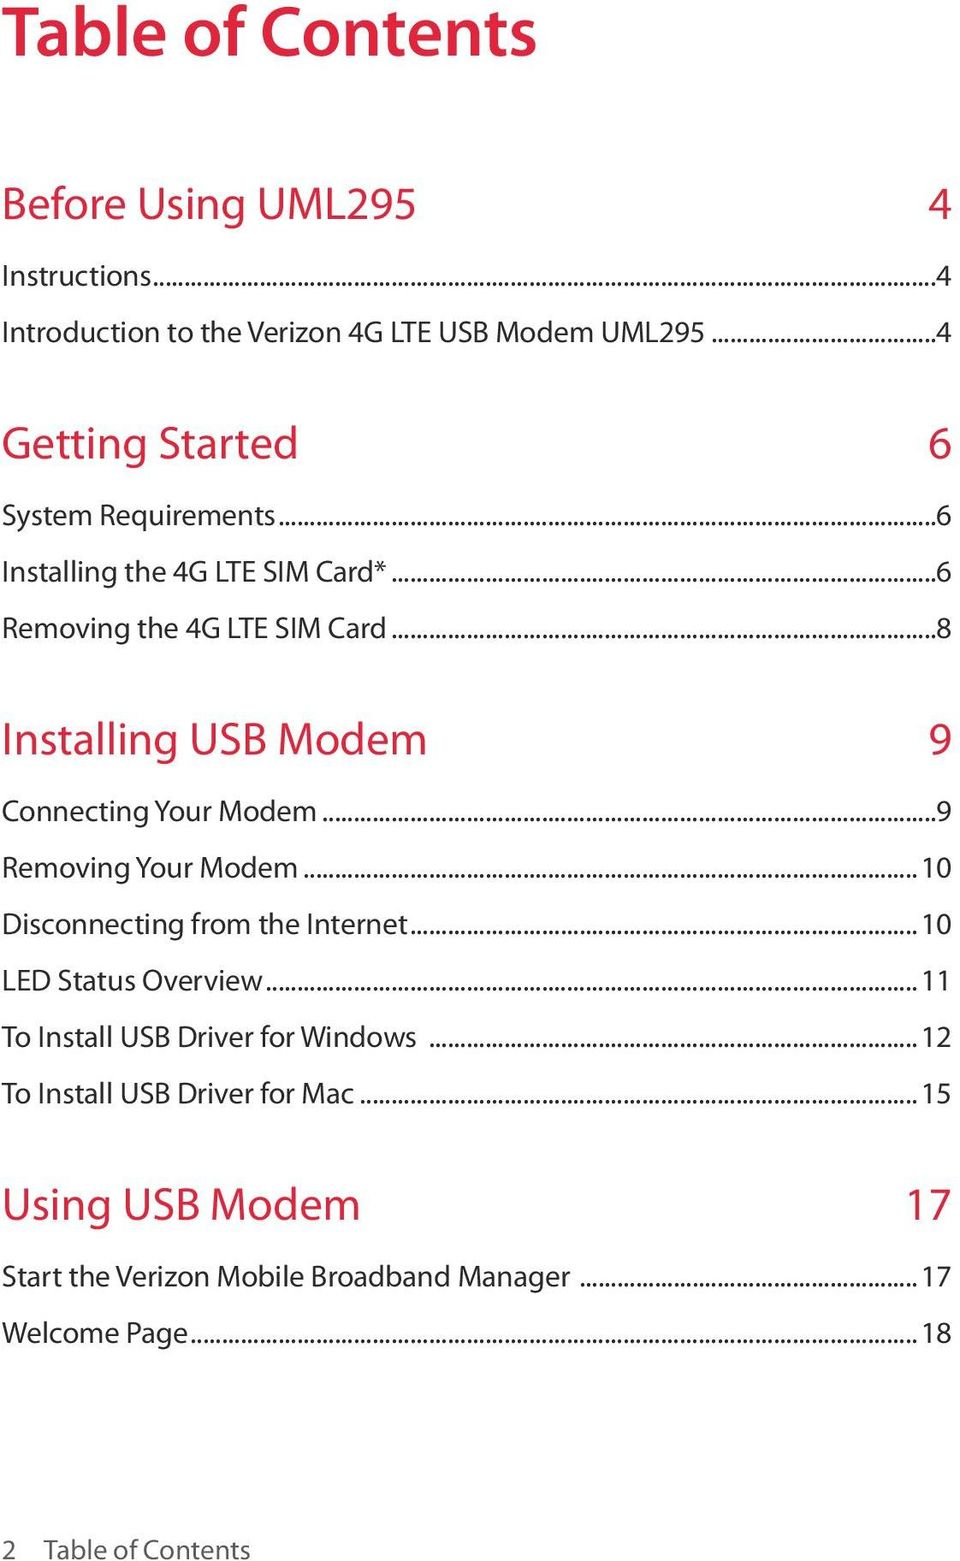 ..8 Installing USB Modem 9 Connecting Your Modem...9 Removing Your Modem...10 Disconnecting from the Internet...10 LED Status Overview.